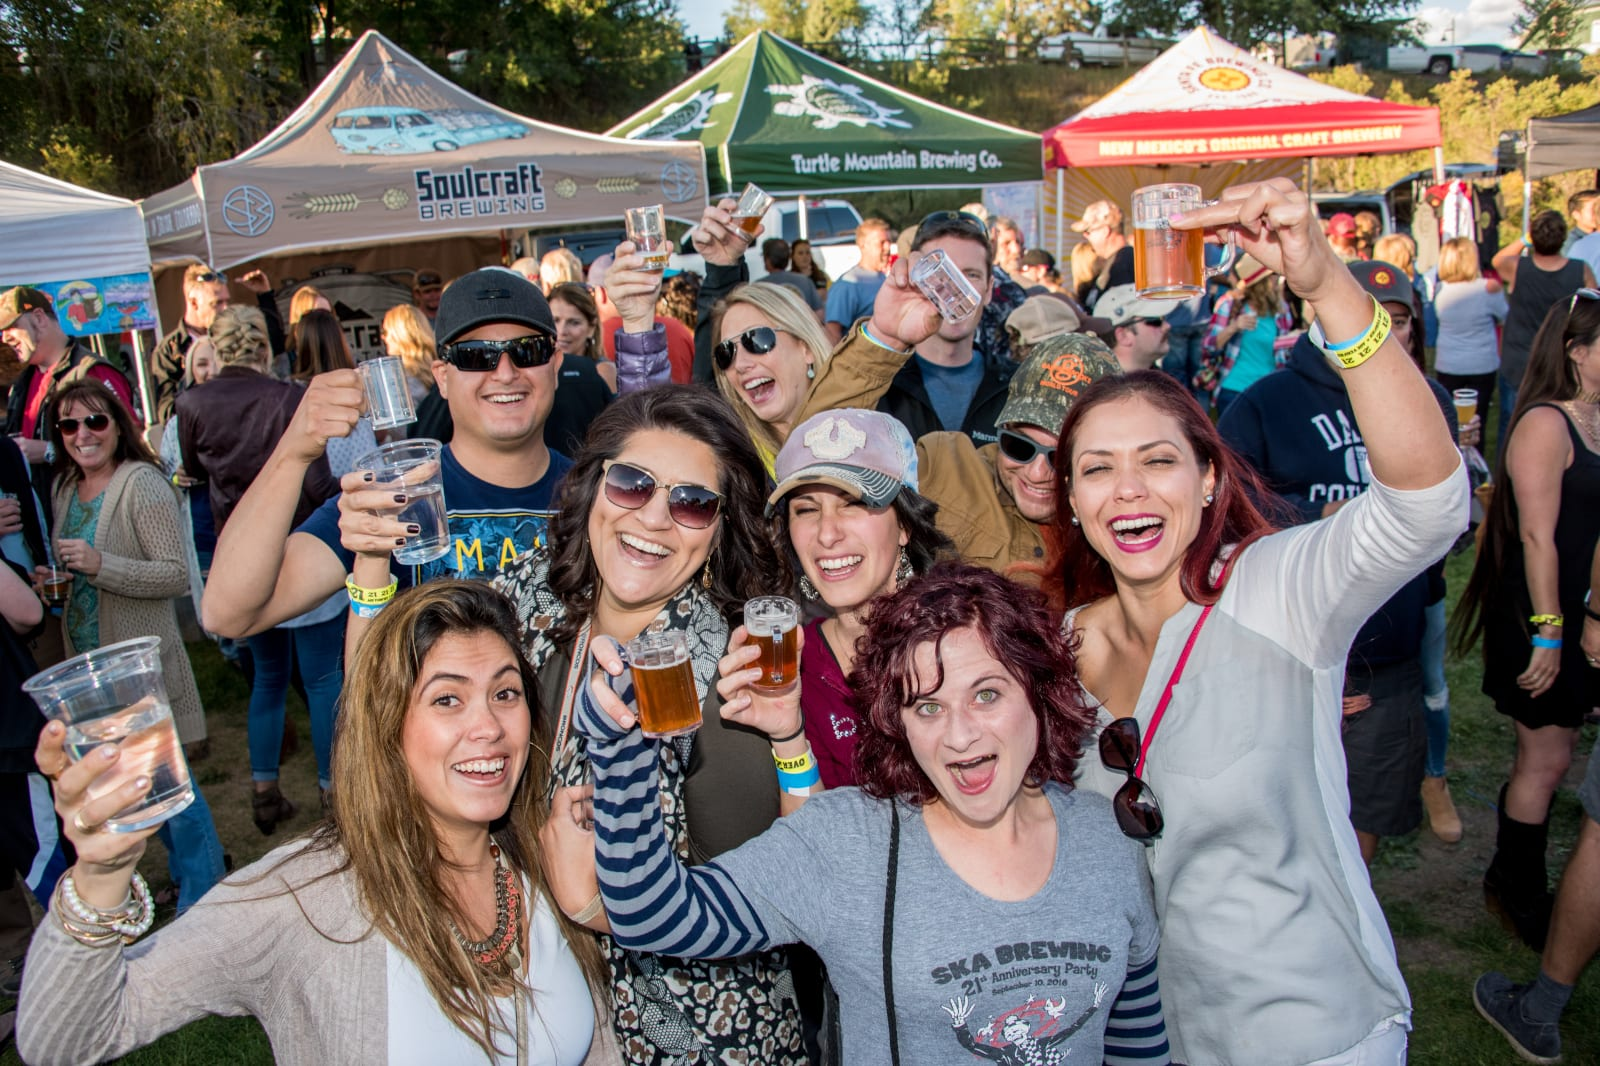 Colorfest Balloon Rally Bands and Brews Festival Pagosa Springs Guests